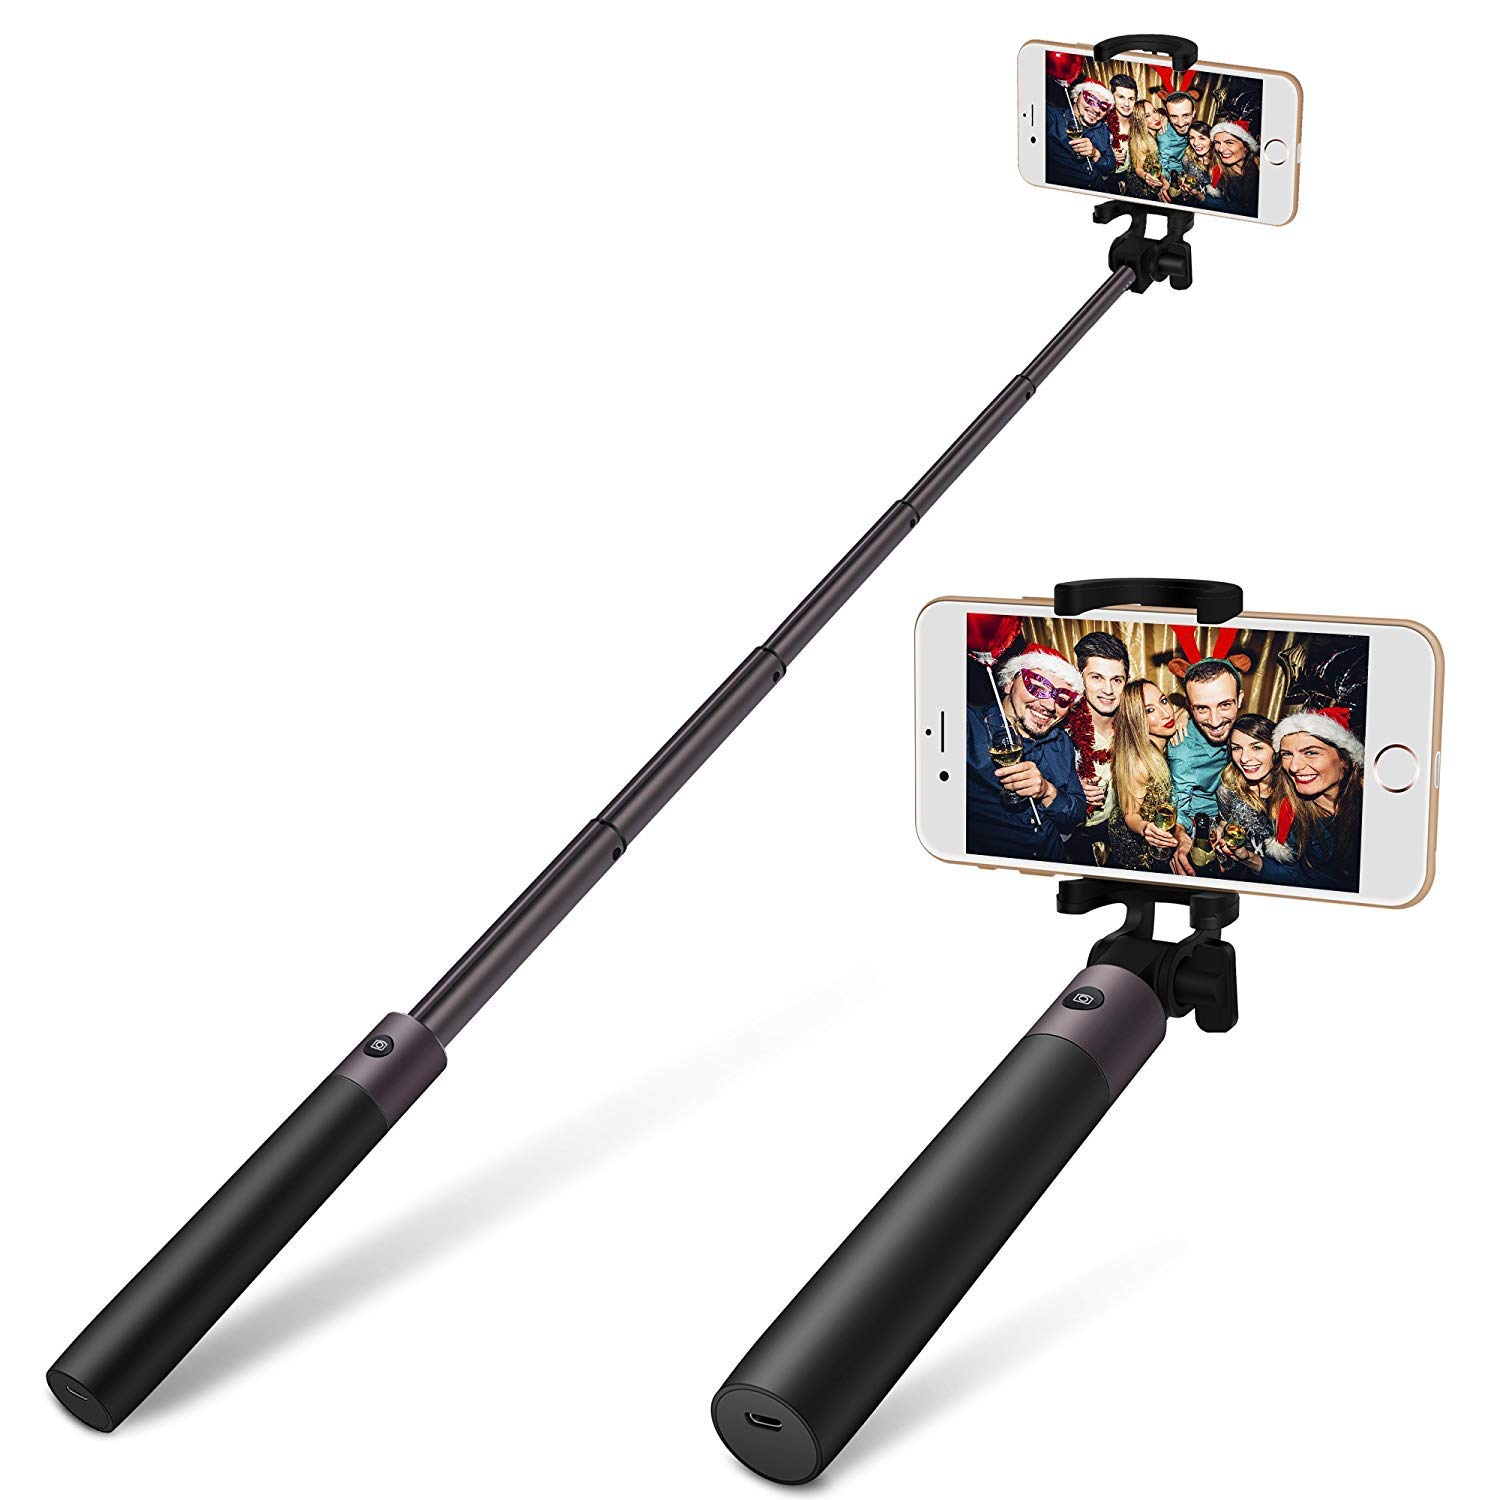 Yarrashop Wire Control Selfie Stick para teléfonos Inteligentes iOS y Android, p. Ej. iPhone 8/8plus /iPhone x, Samsung S6/S6 Edge,S7/S7 Edge/S8/S8 Plus y ...